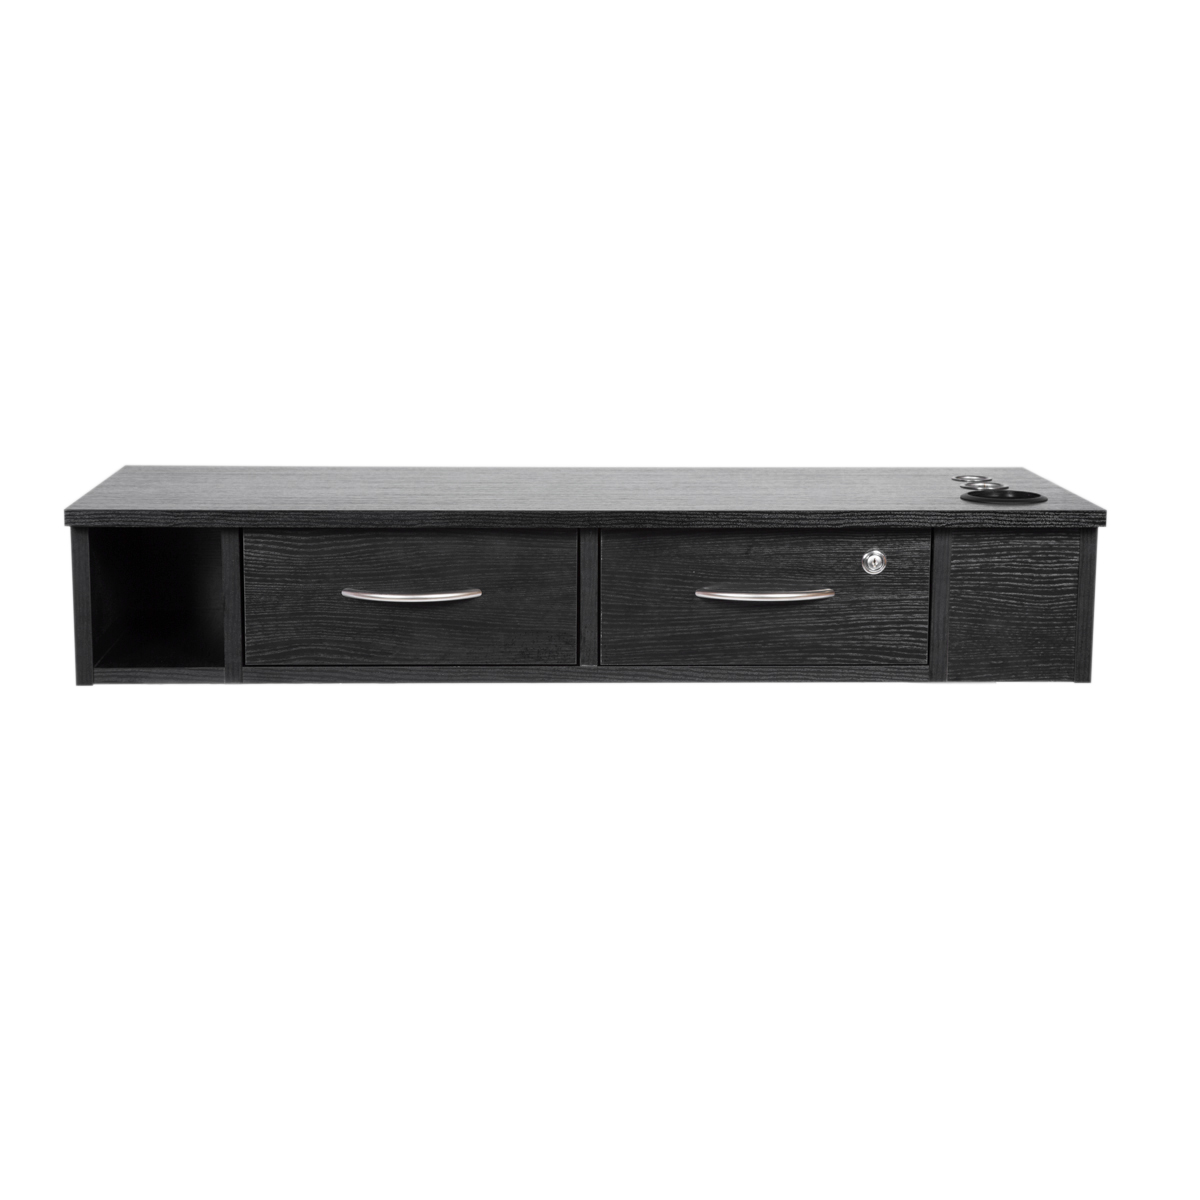 Wall Station w/ Cubby 42 Inch  main product image